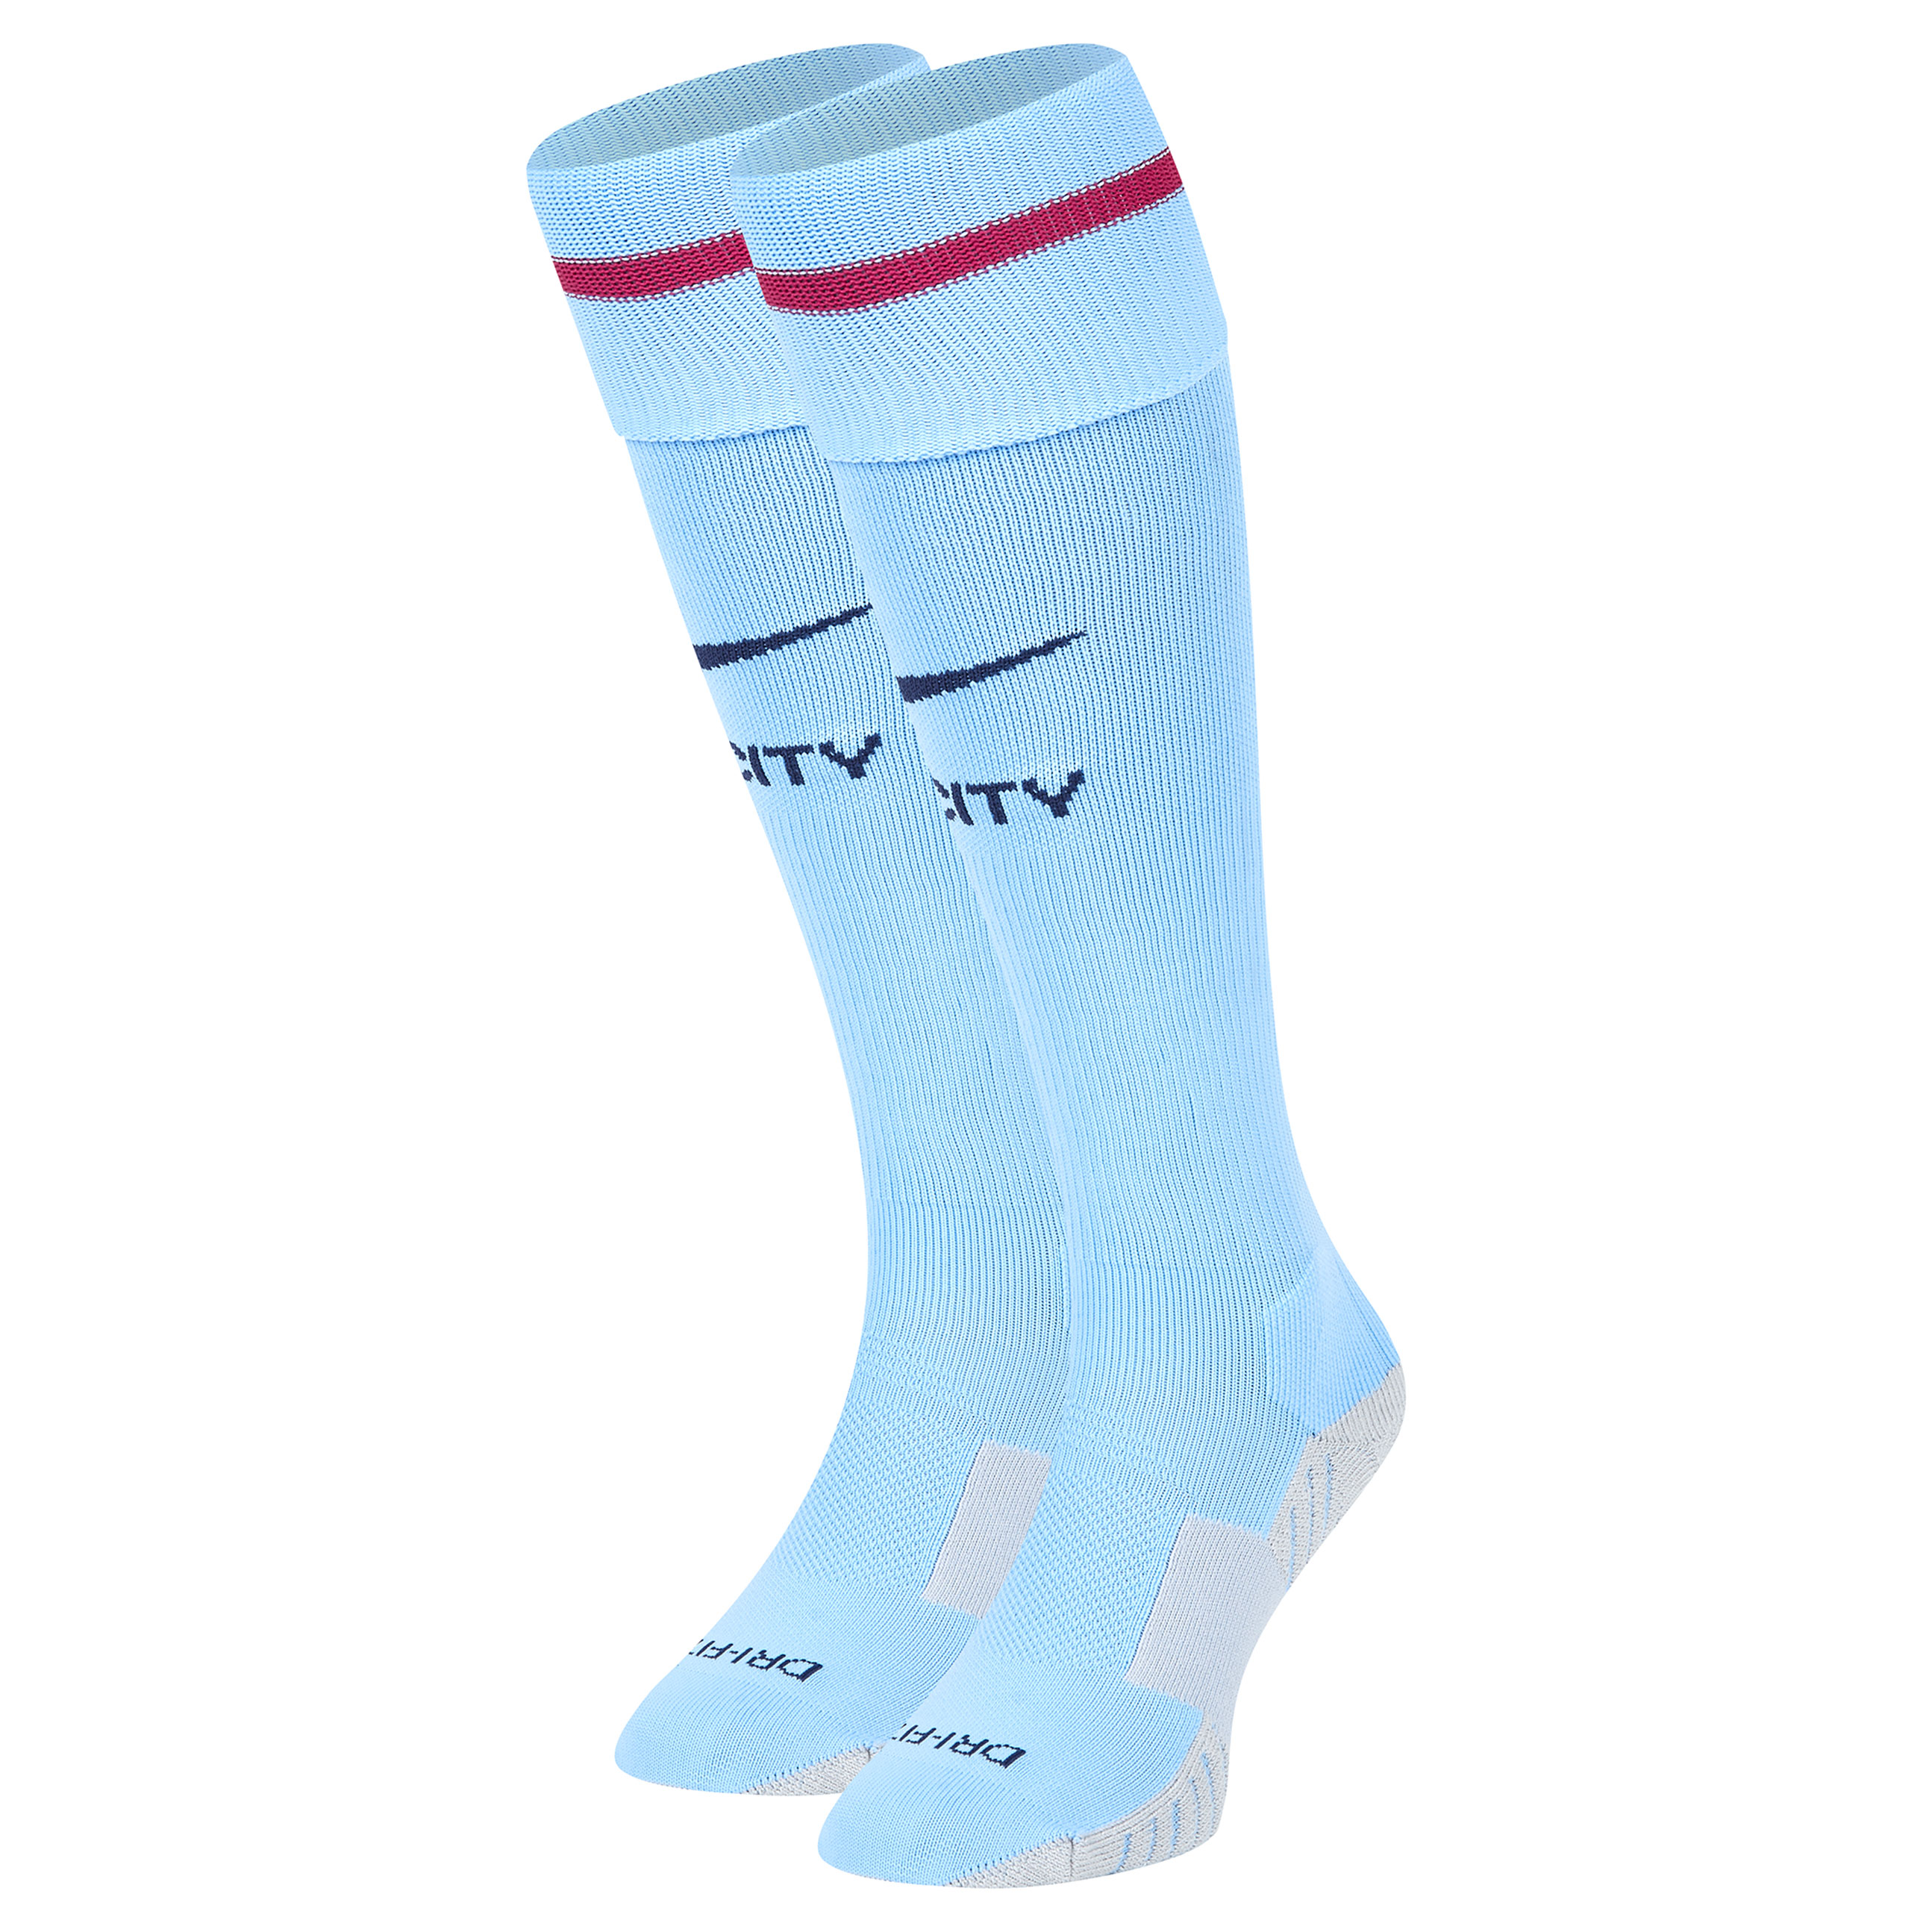 Manchester City Home Match Socks 2017-18